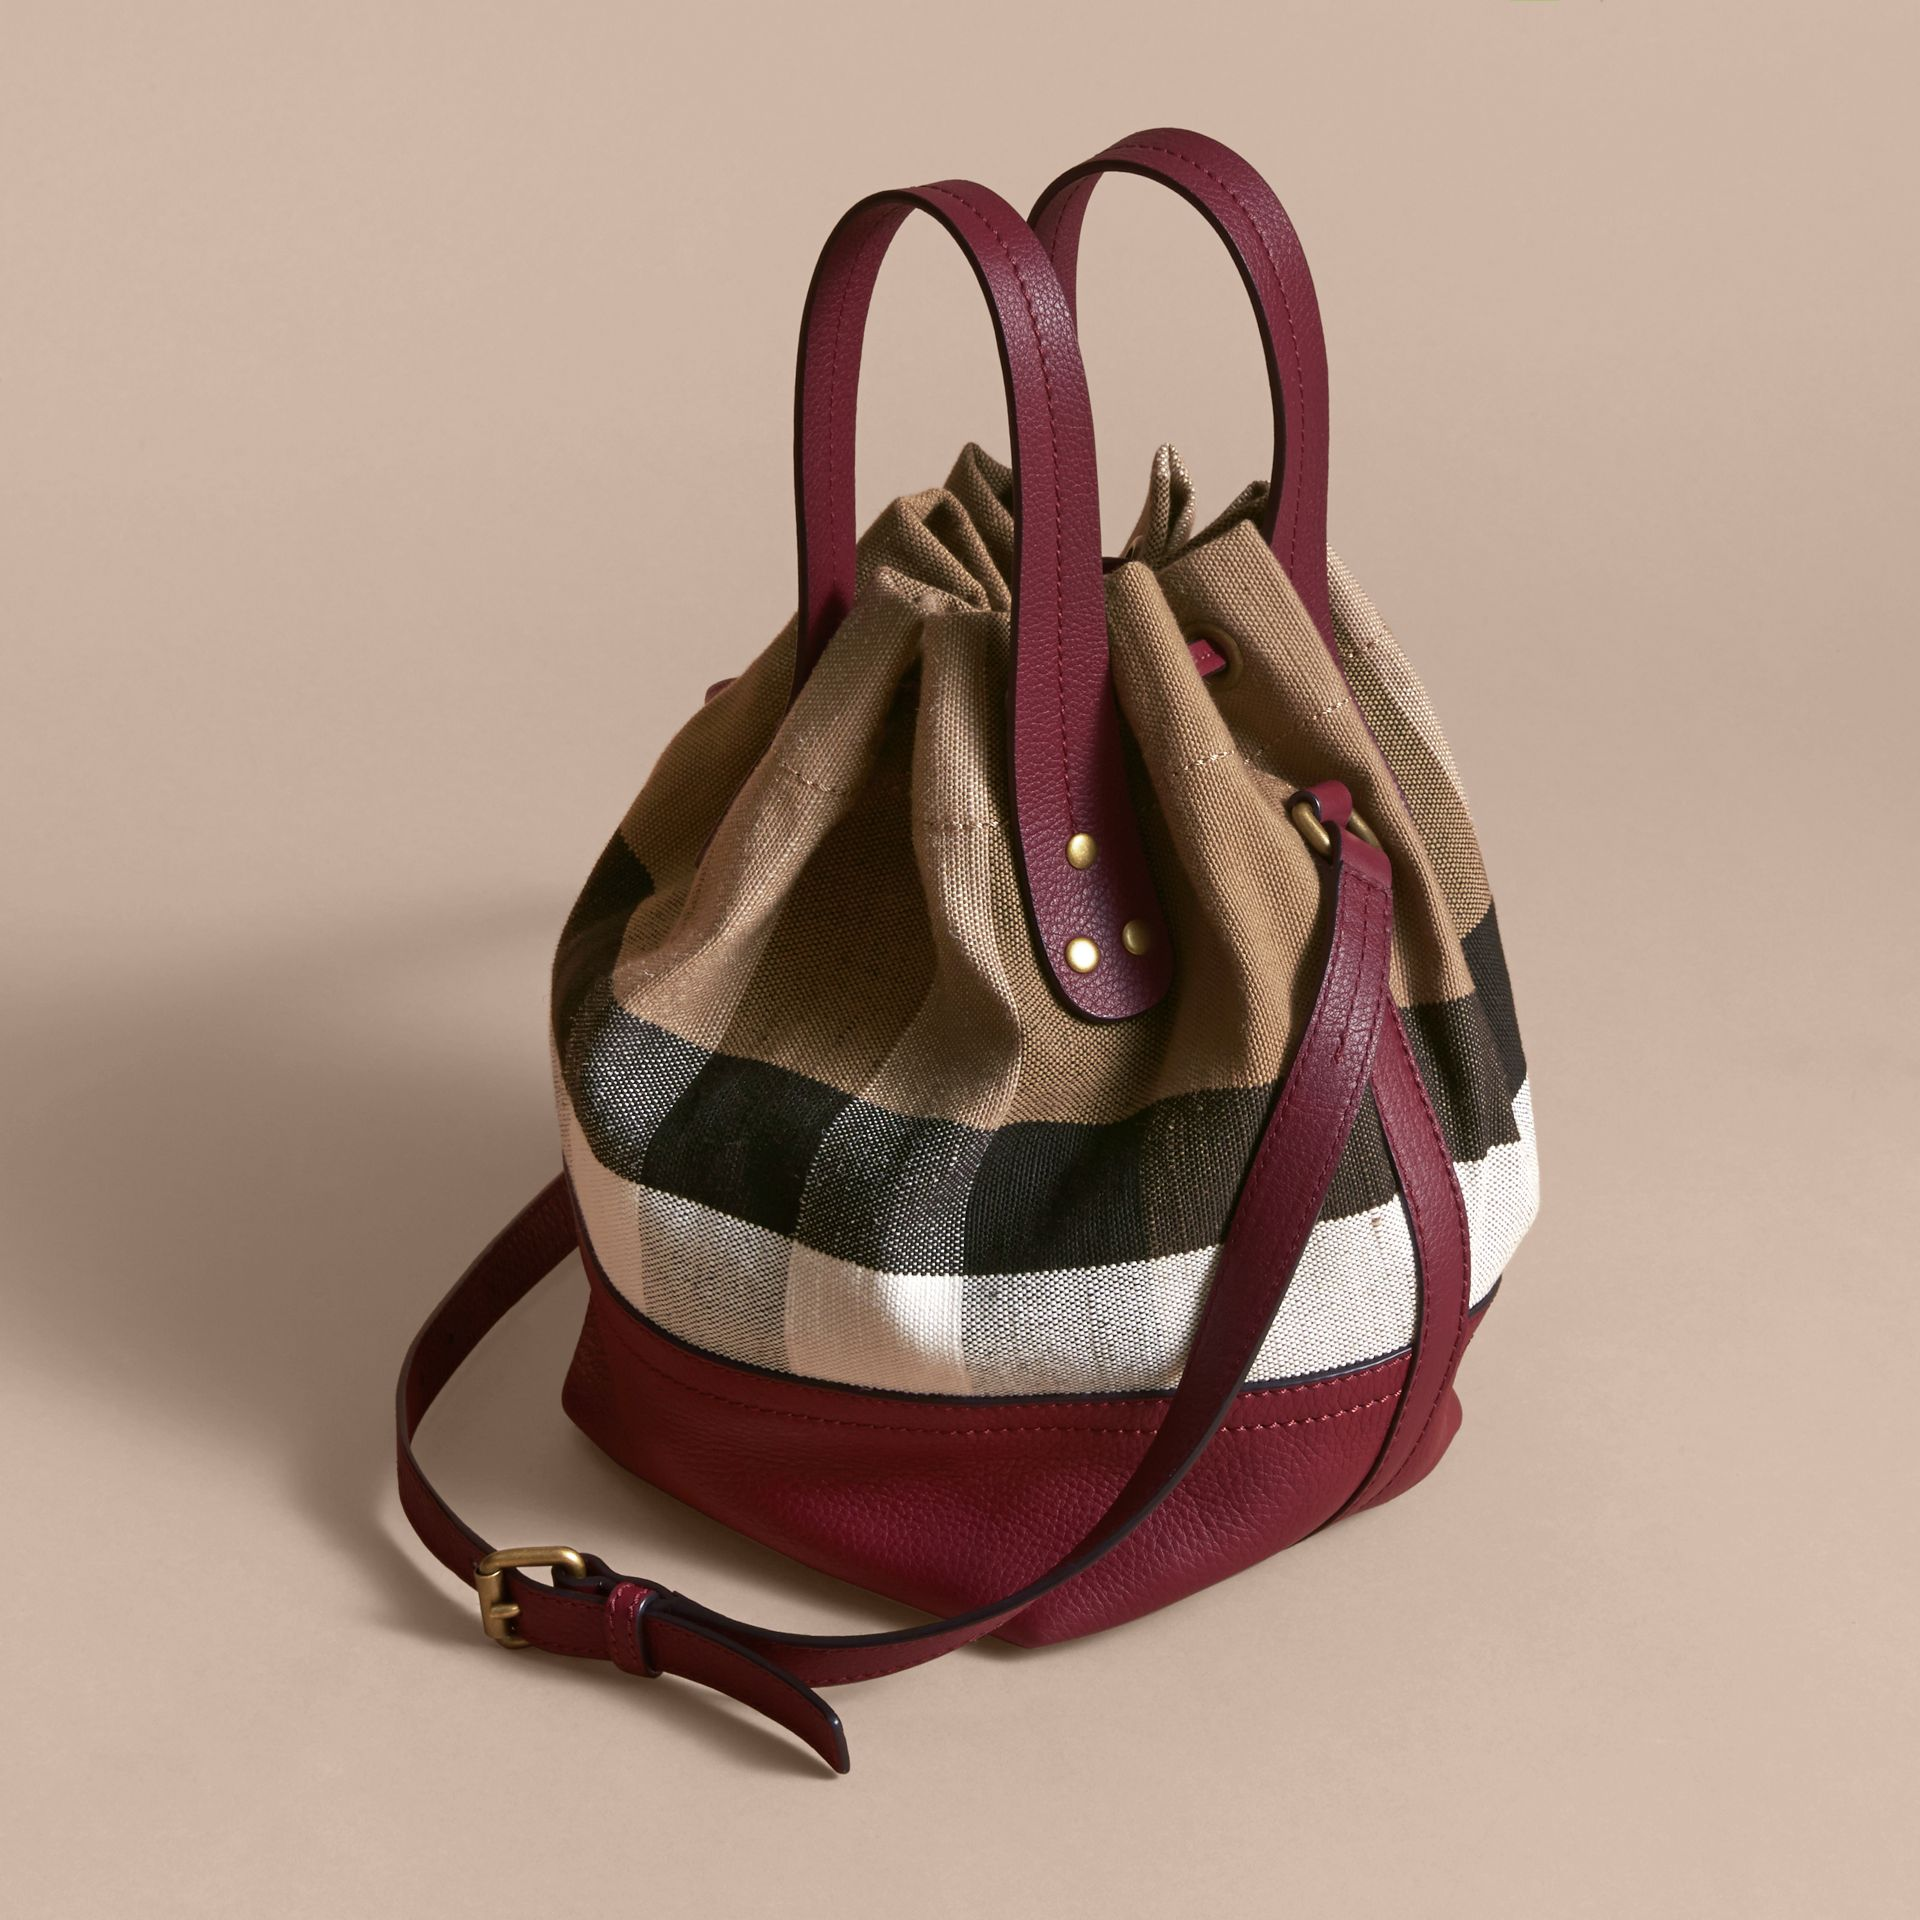 Small Canvas Check and Leather Bucket Bag in Burgundy Red - Women | Burberry Singapore - gallery image 5